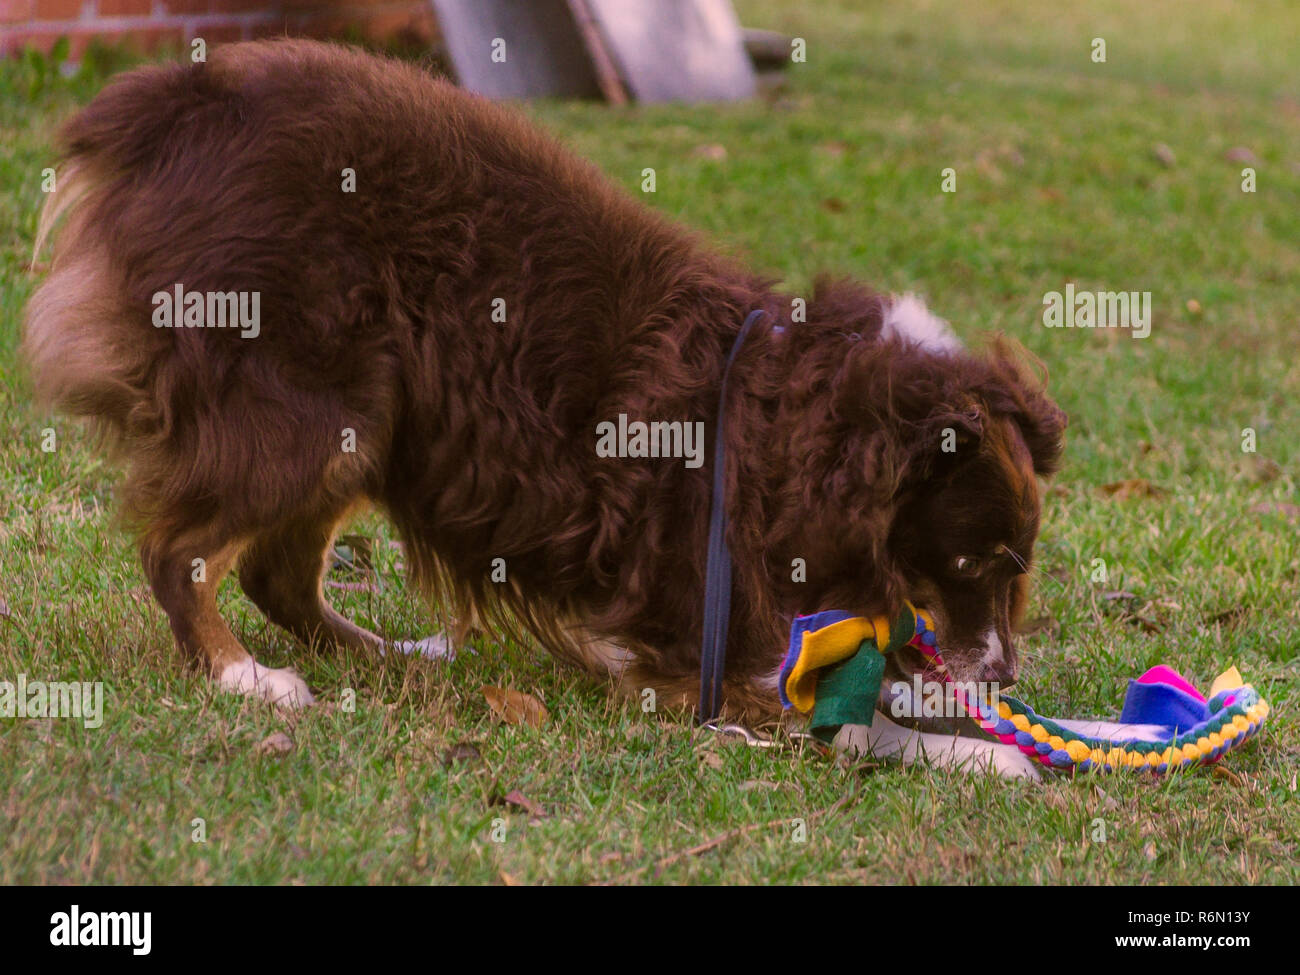 Cowboy, a red tri Australian Shepherd dog, plays with a braided rope toy, Oct. 29, 2015, in Coden, Alabama. - Stock Image